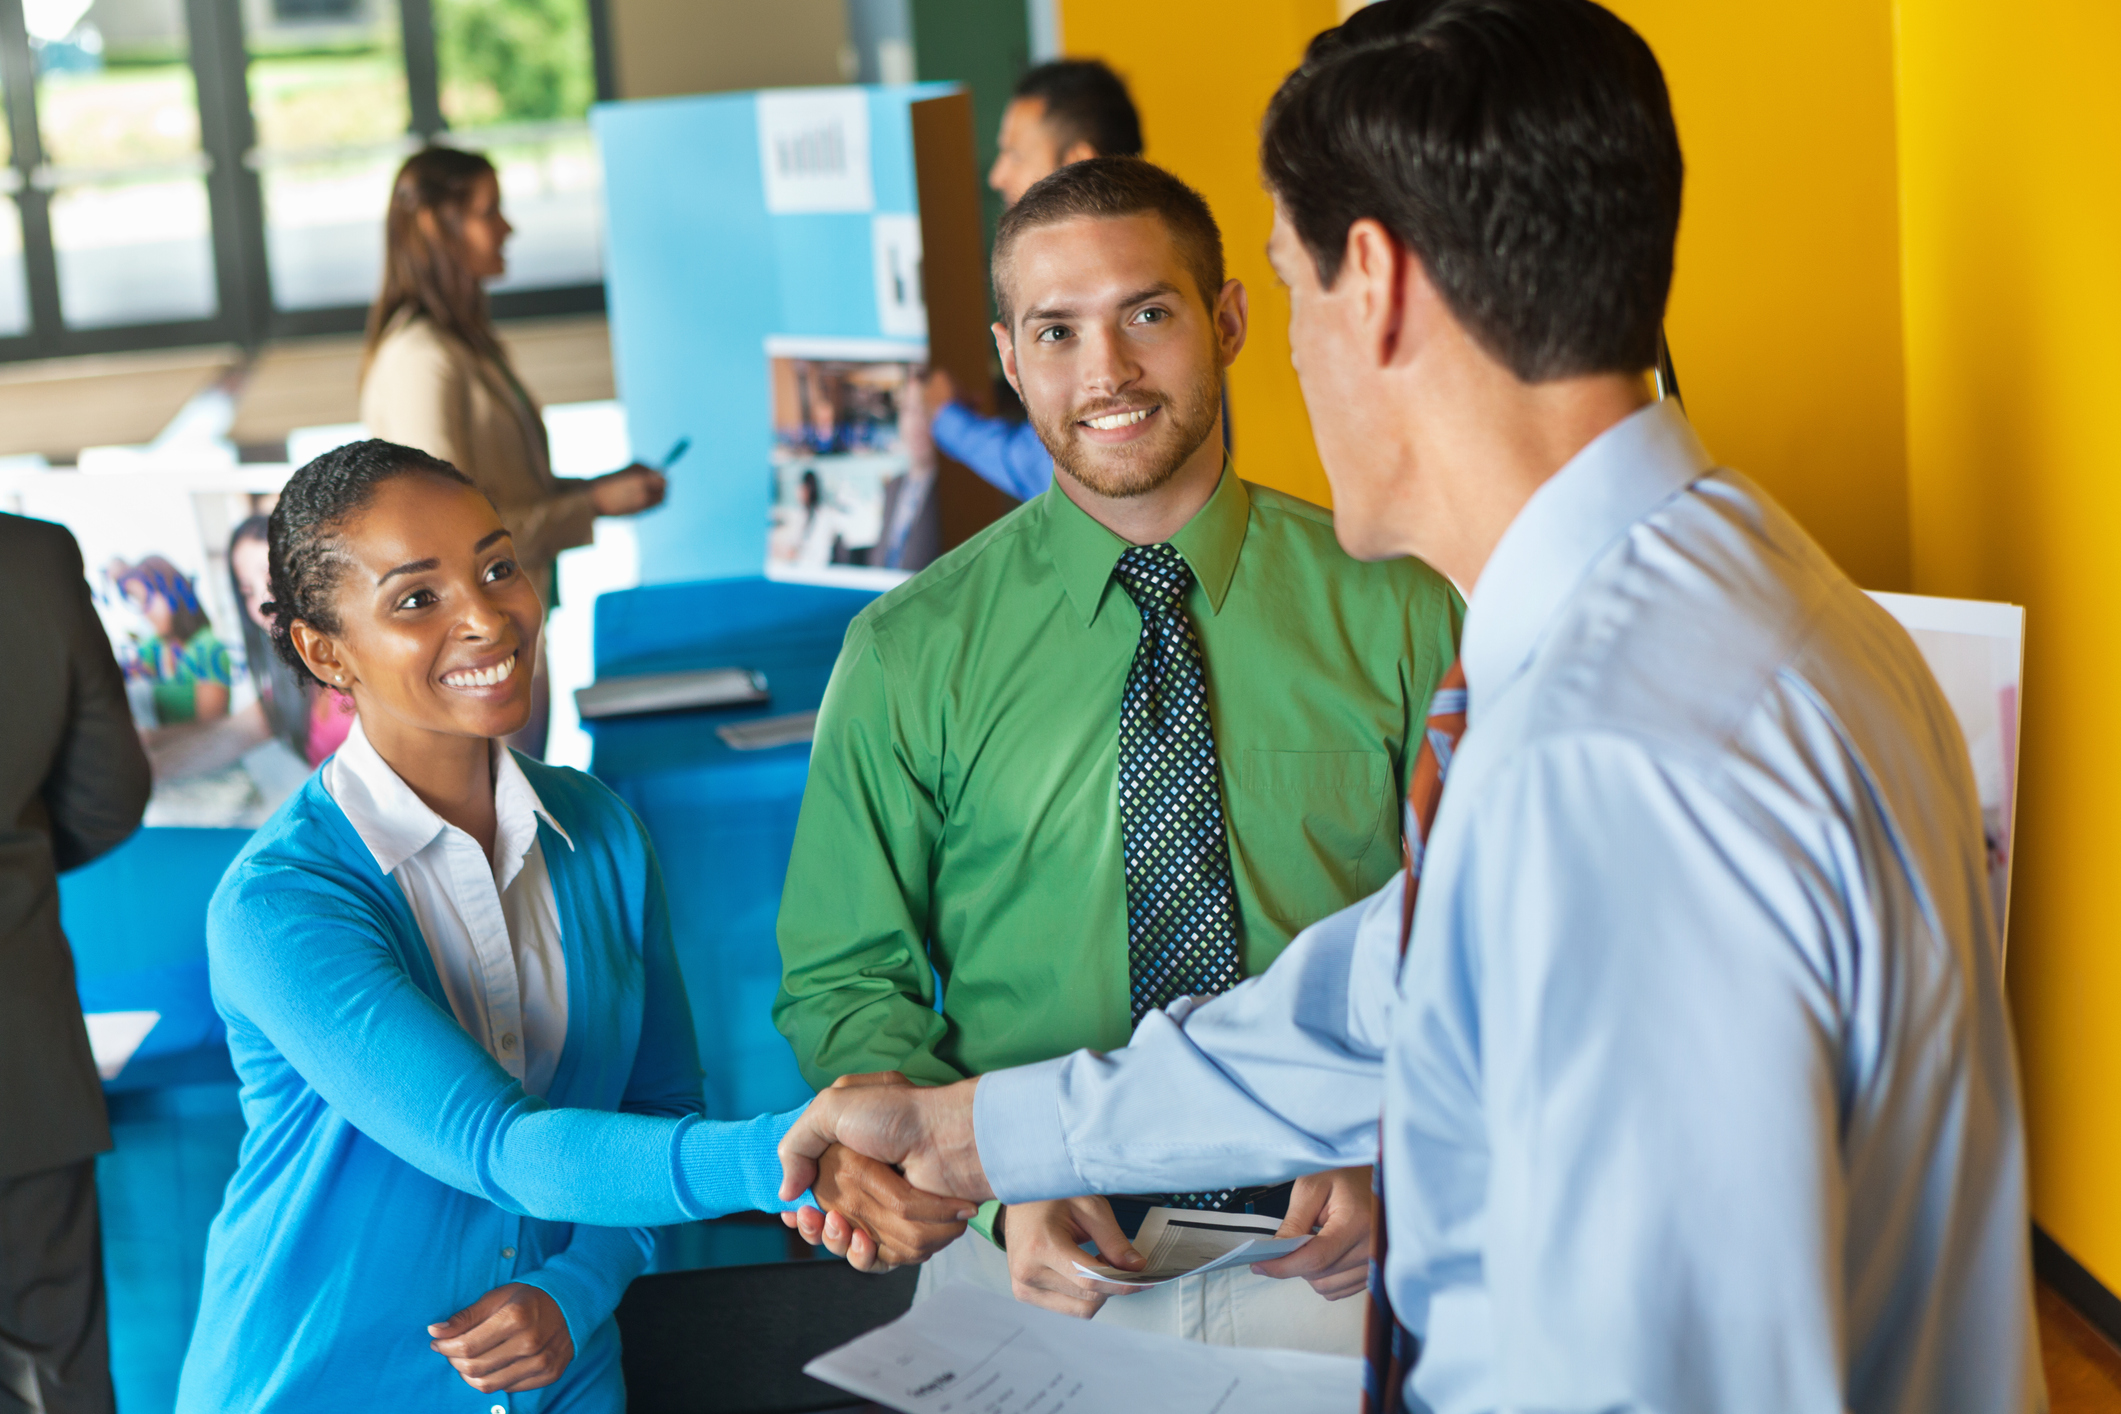 shaking hands at a job fair